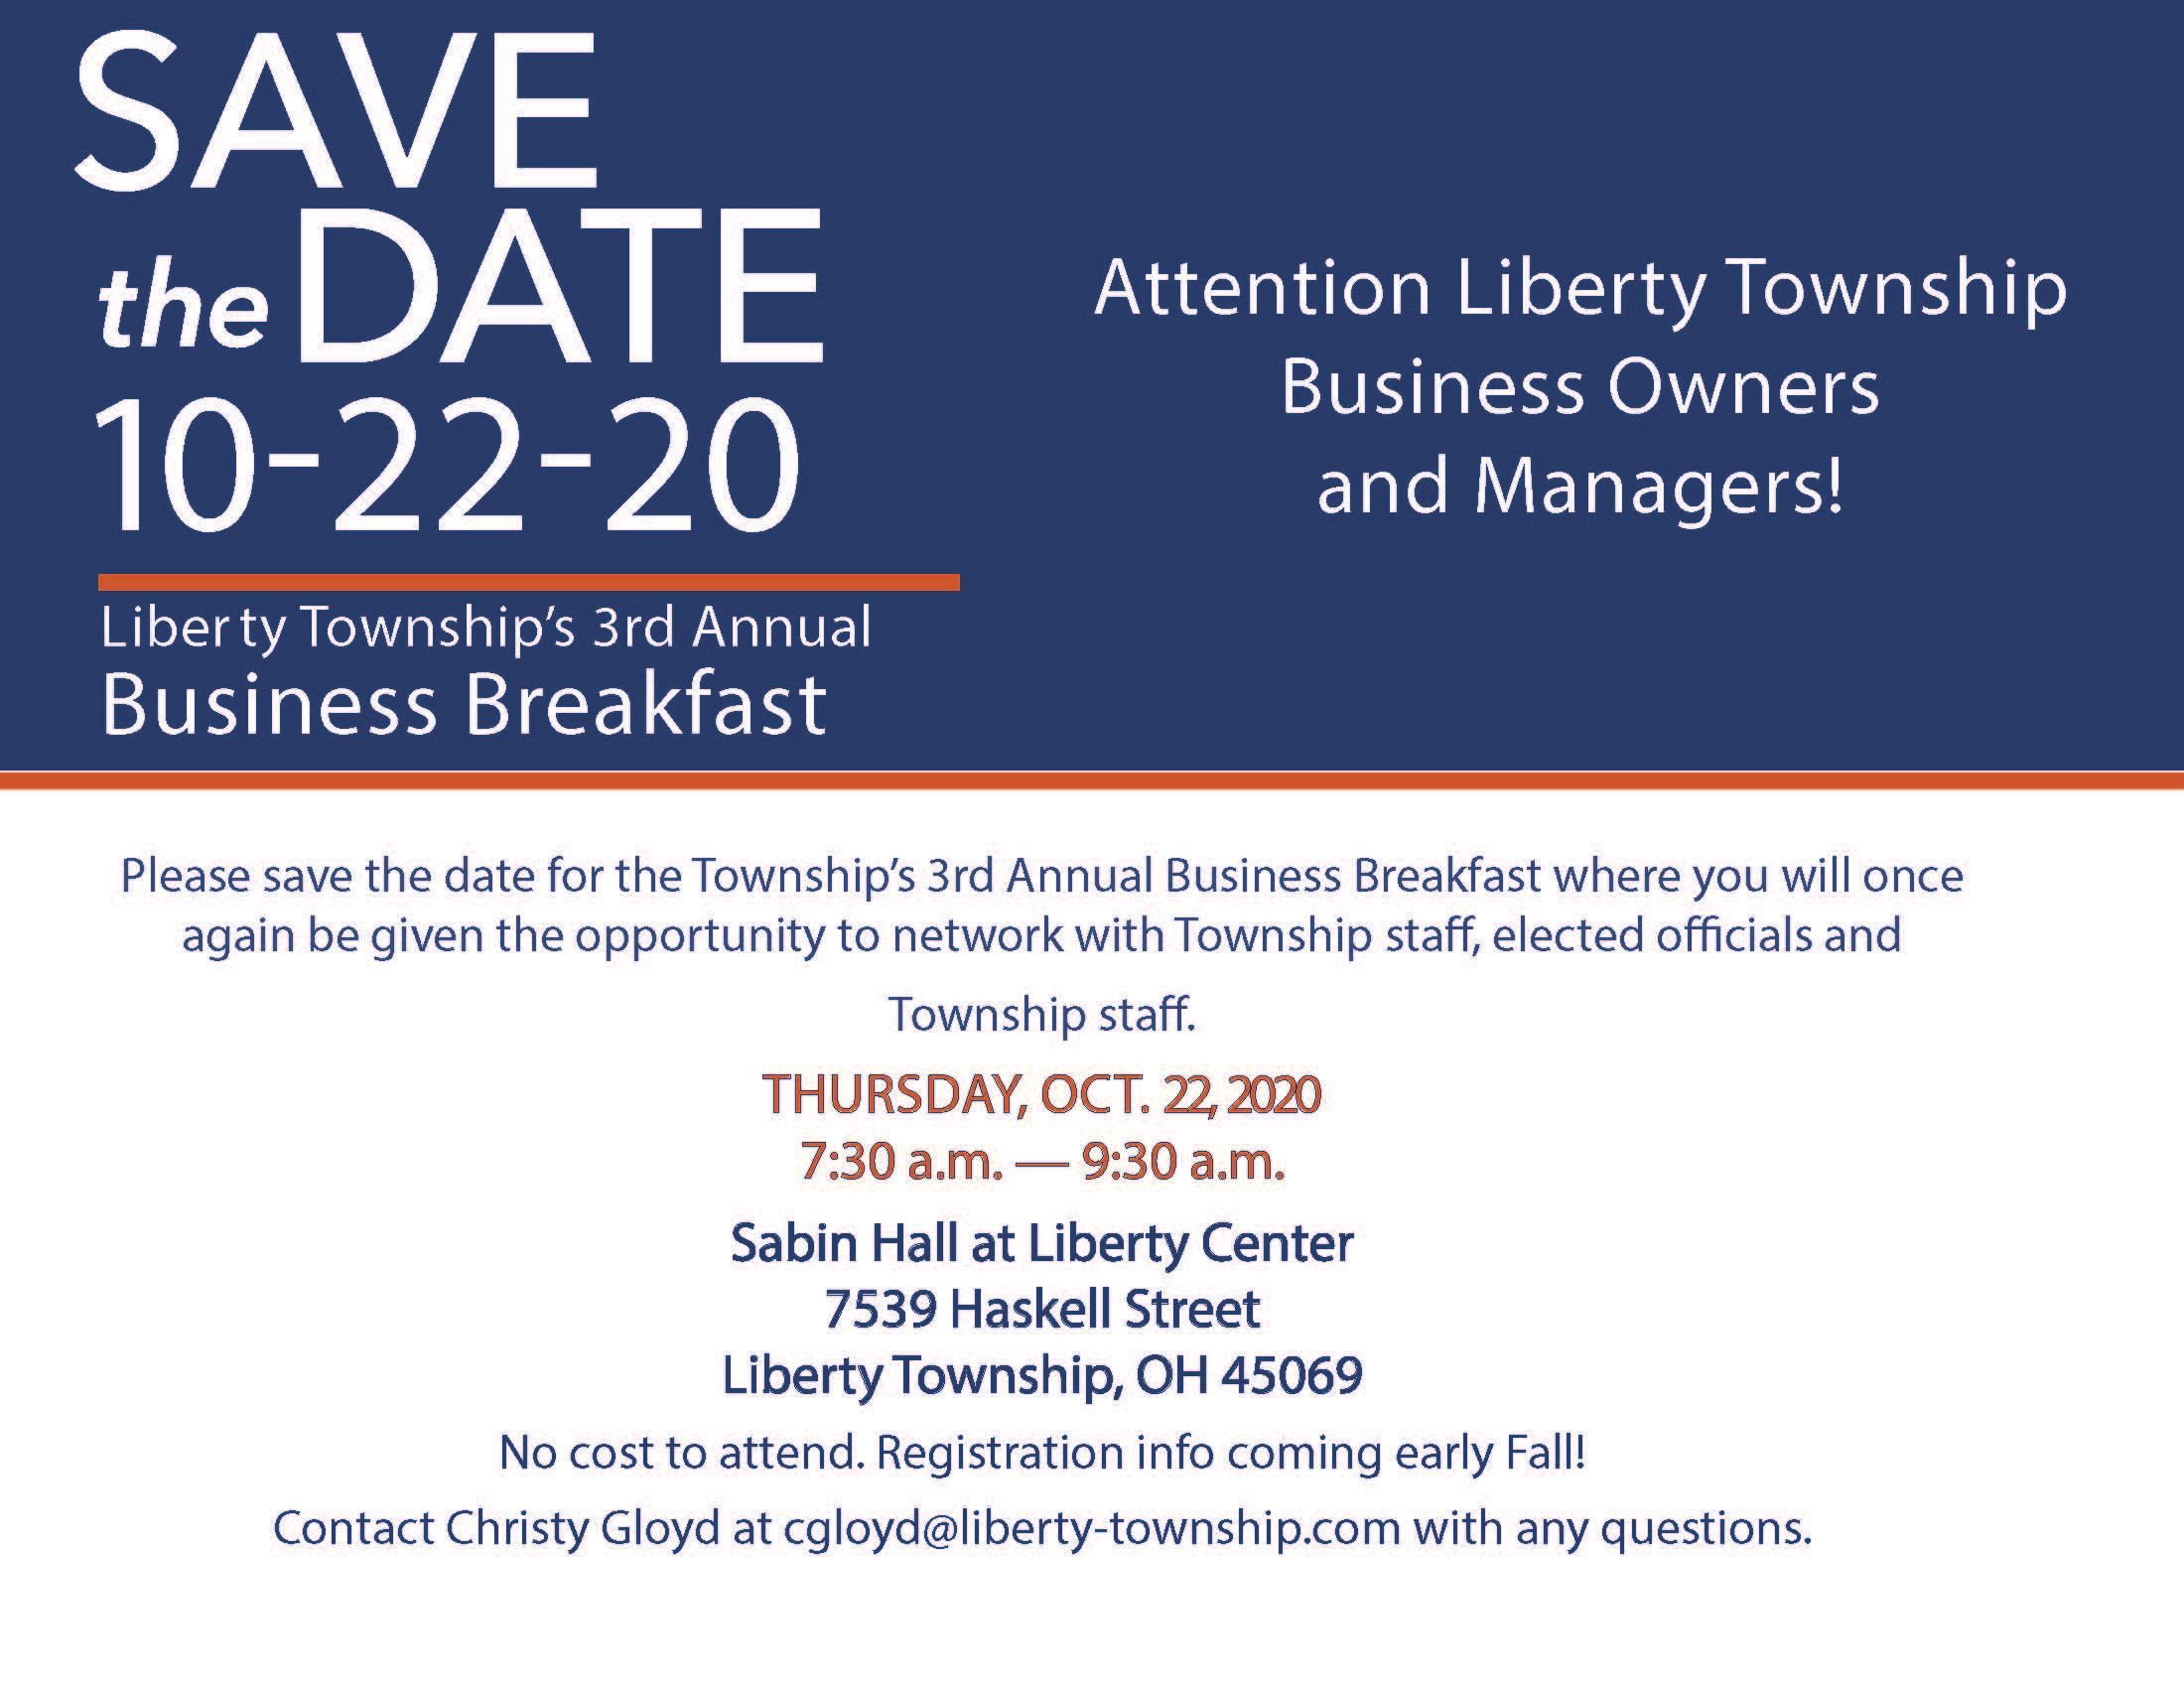 2020 Business Breakfast Save the Date